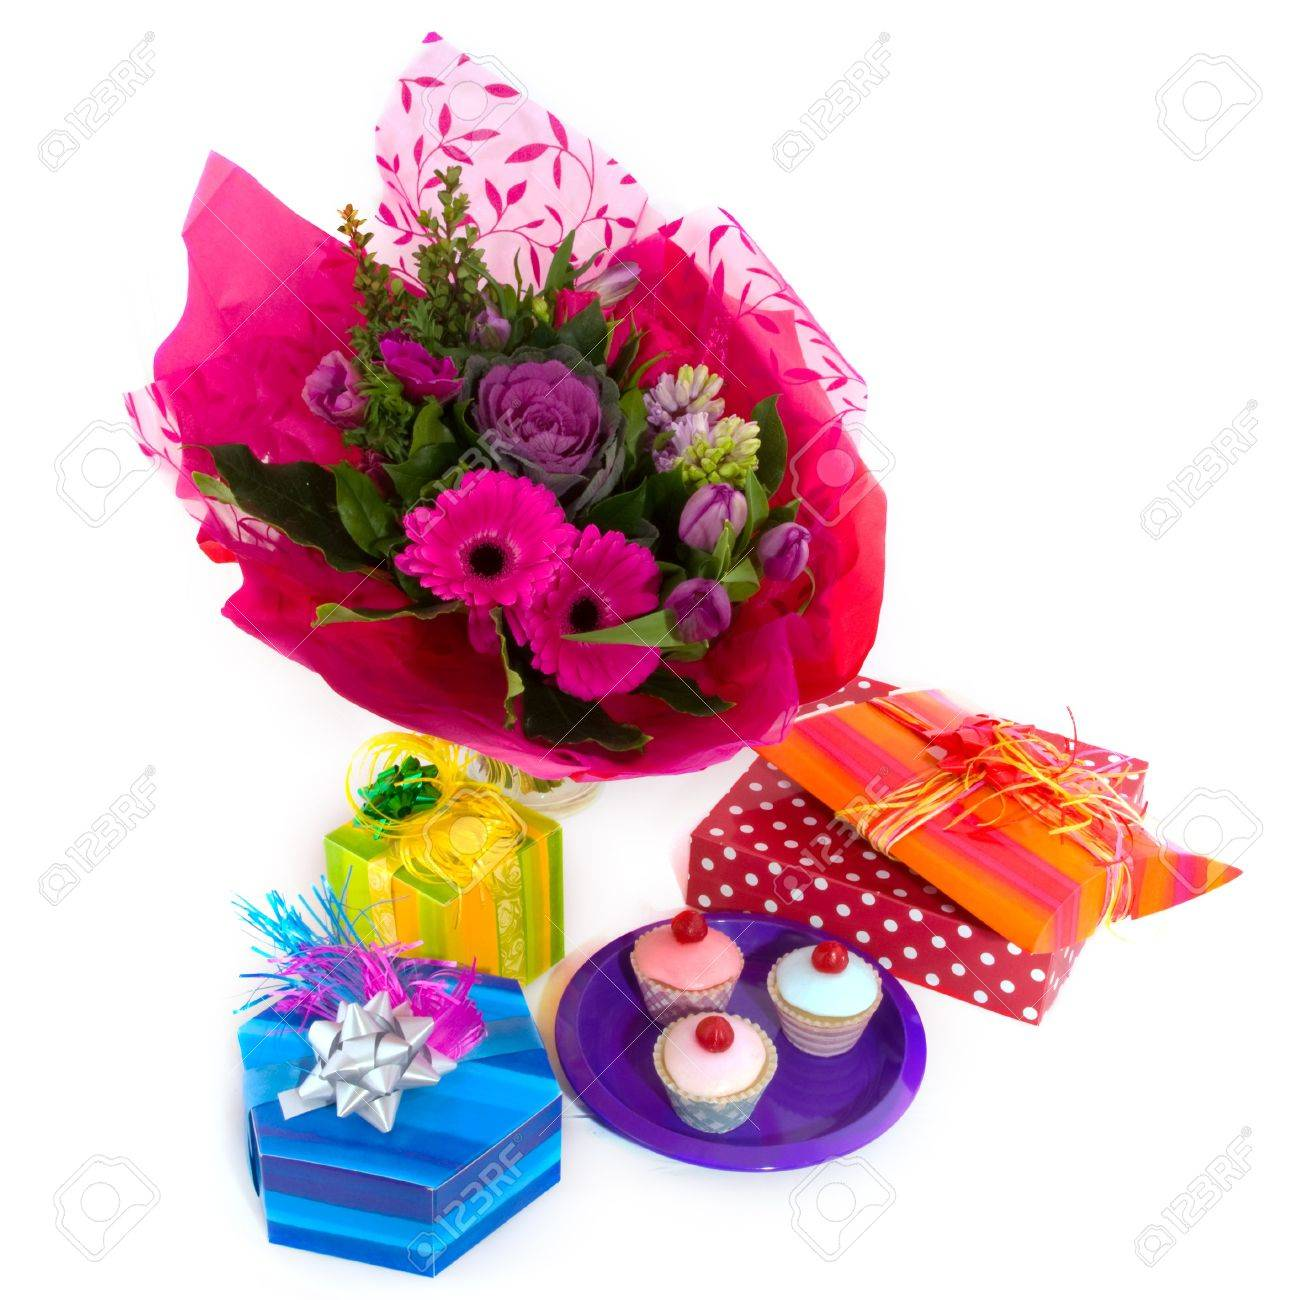 Happy Birthday With Flowers Surprises And Fancy Cakes Stock Photo